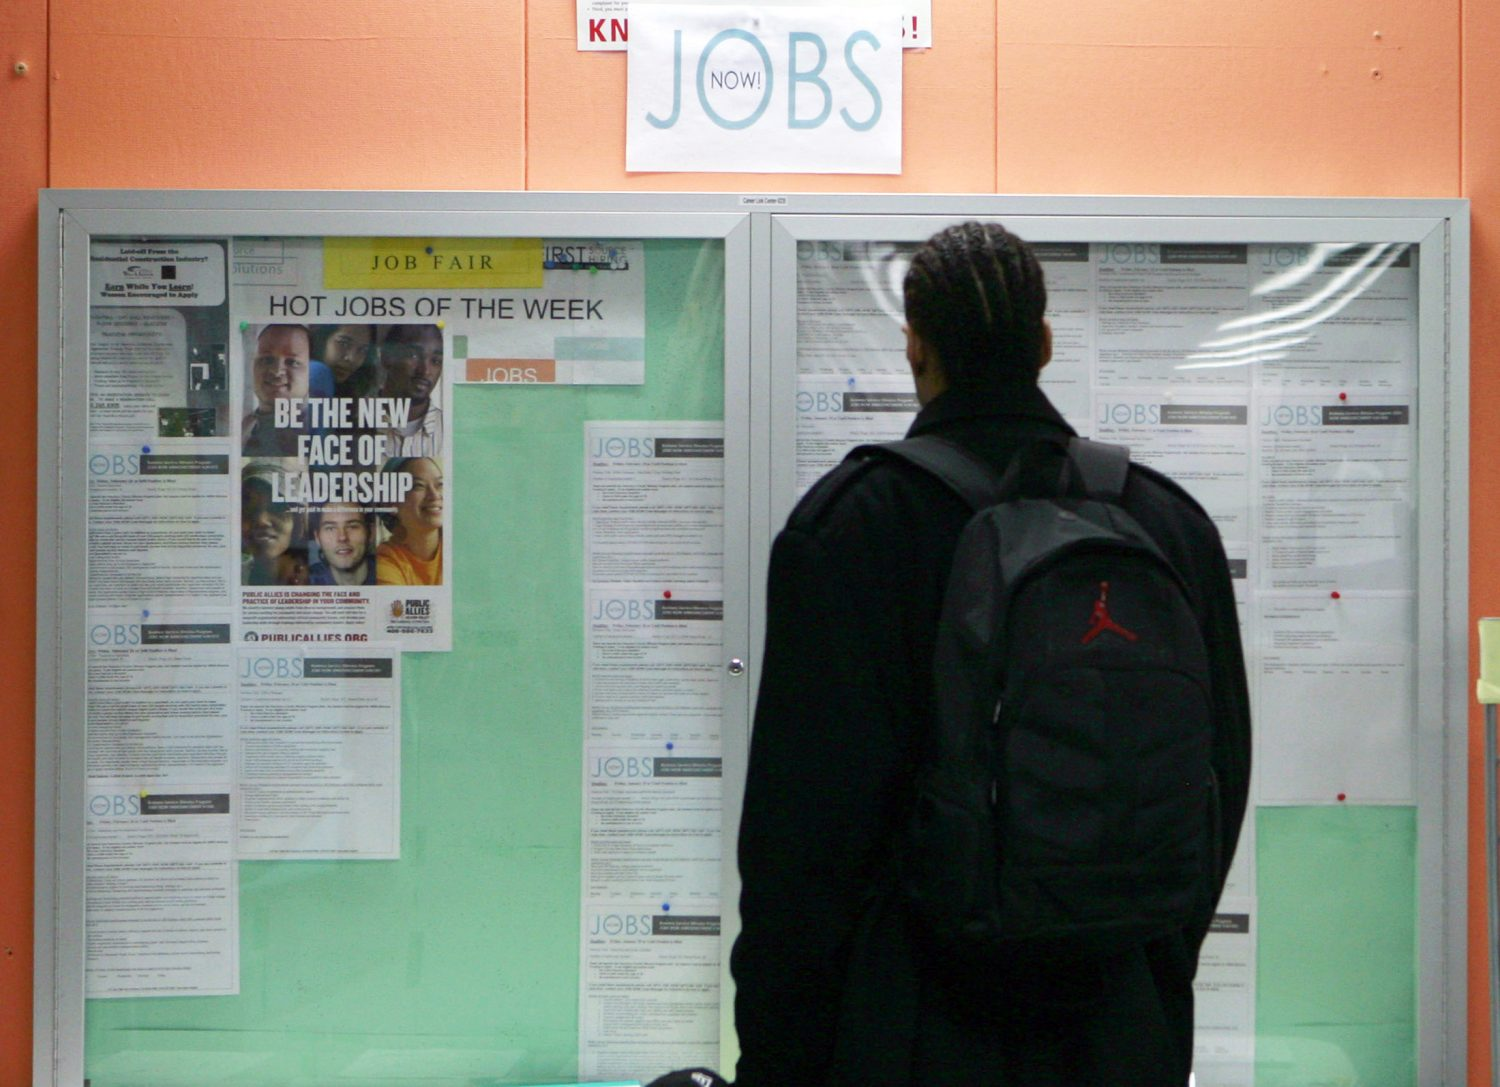 FILE PHOTO: A man looks over employment opportunities at a jobs center in San Francisco, California, in this February 4, 2010 file photo. REUTERS/Robert Galbraith/Files